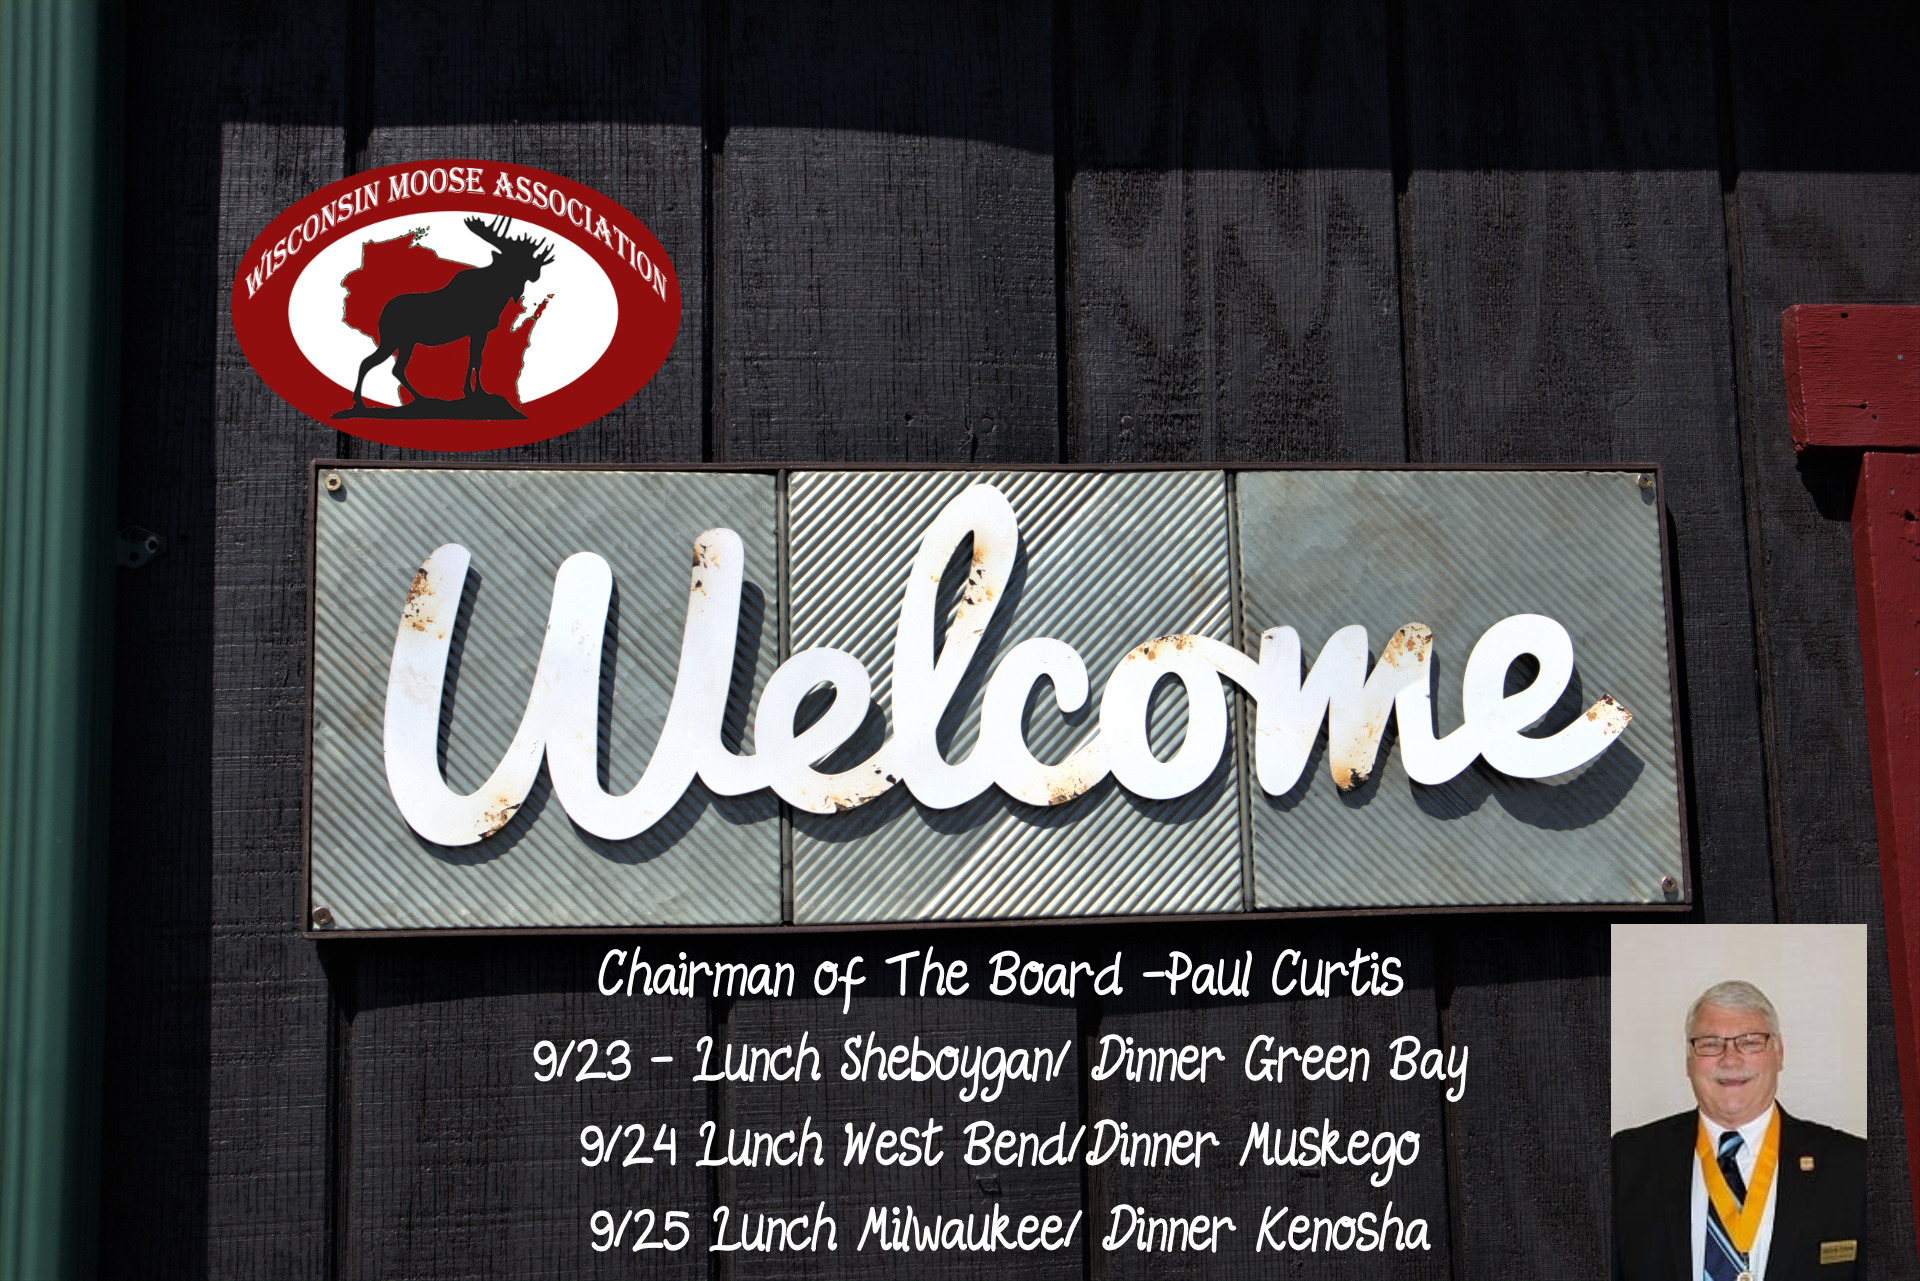 Chairman of The Board -Paul Curtis -Visits – September 23-25